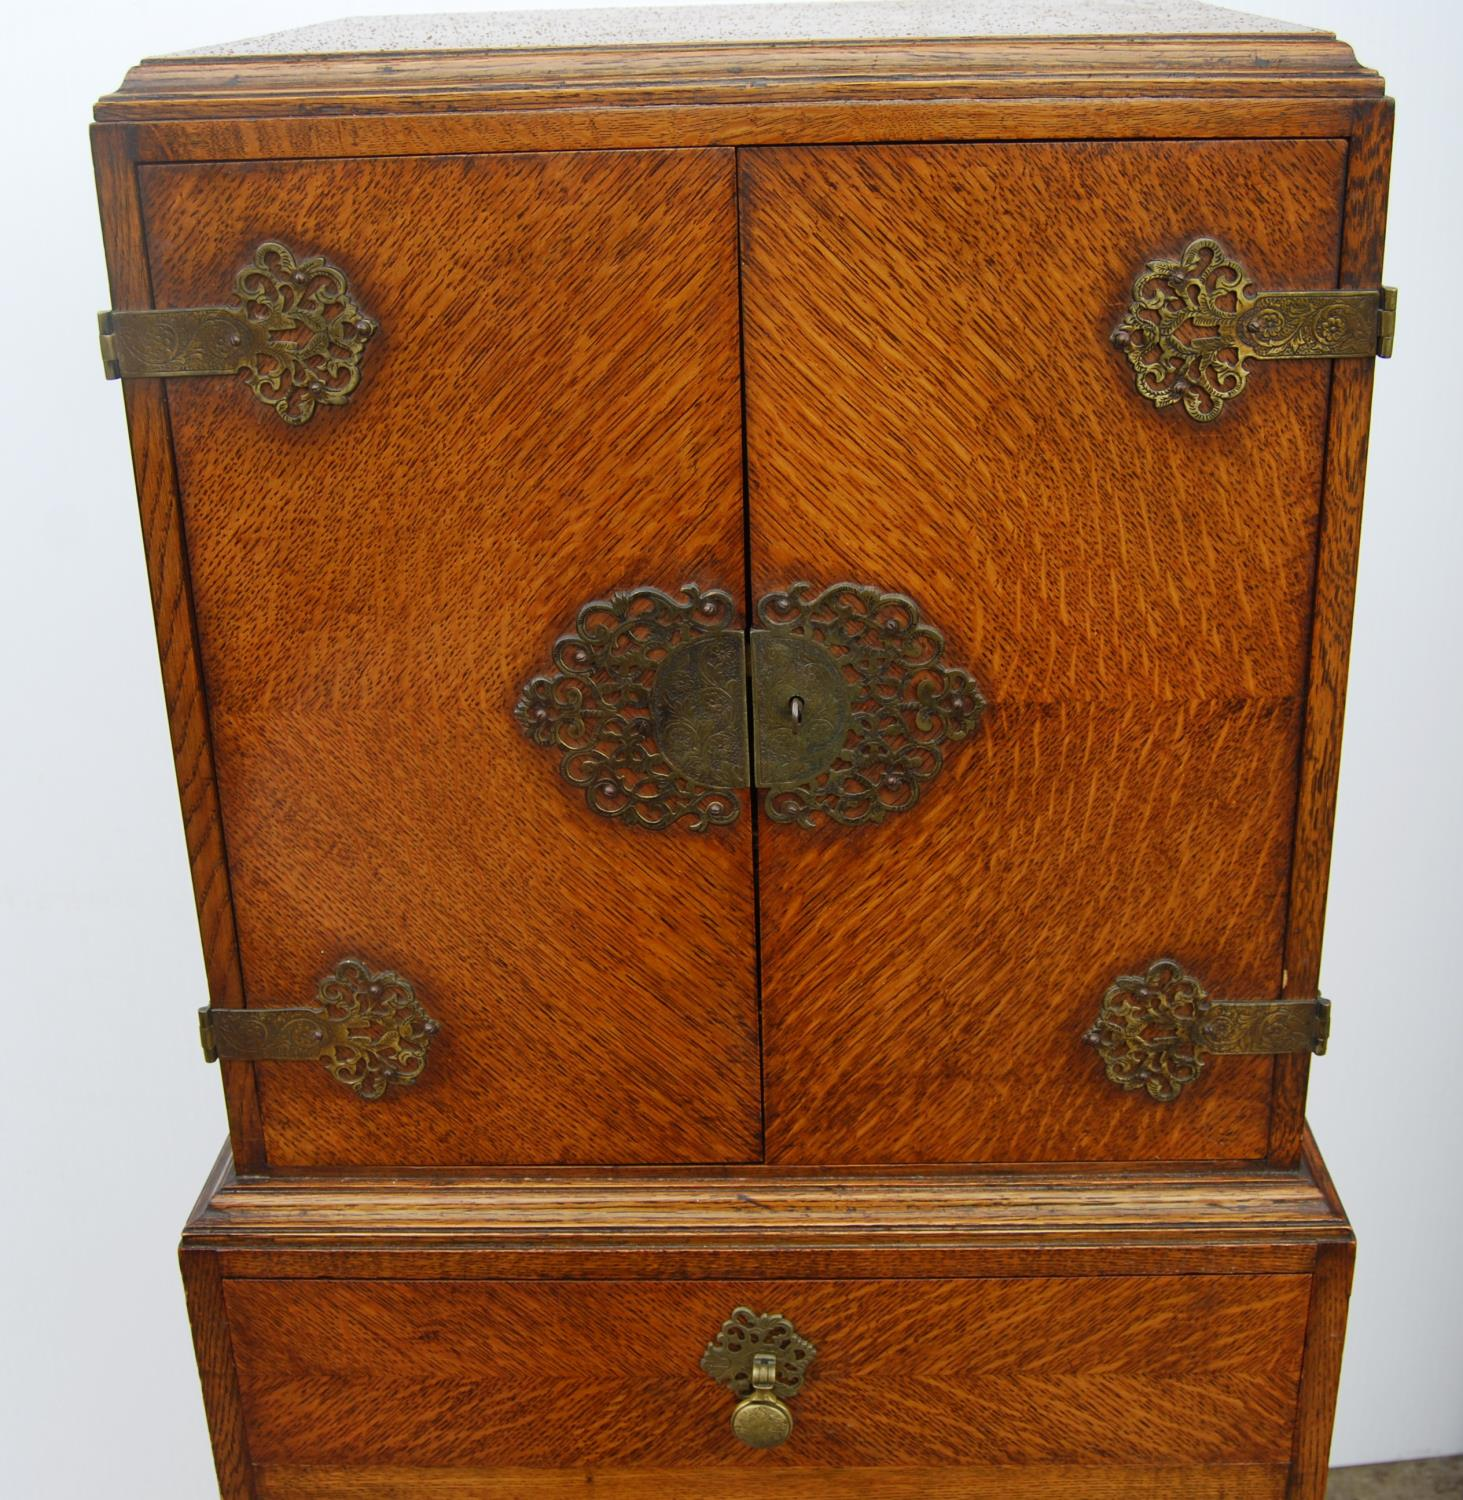 Edwardian oak cabinet on stand, the rectangular top above a cupboard with elaborate hinges and - Image 3 of 4